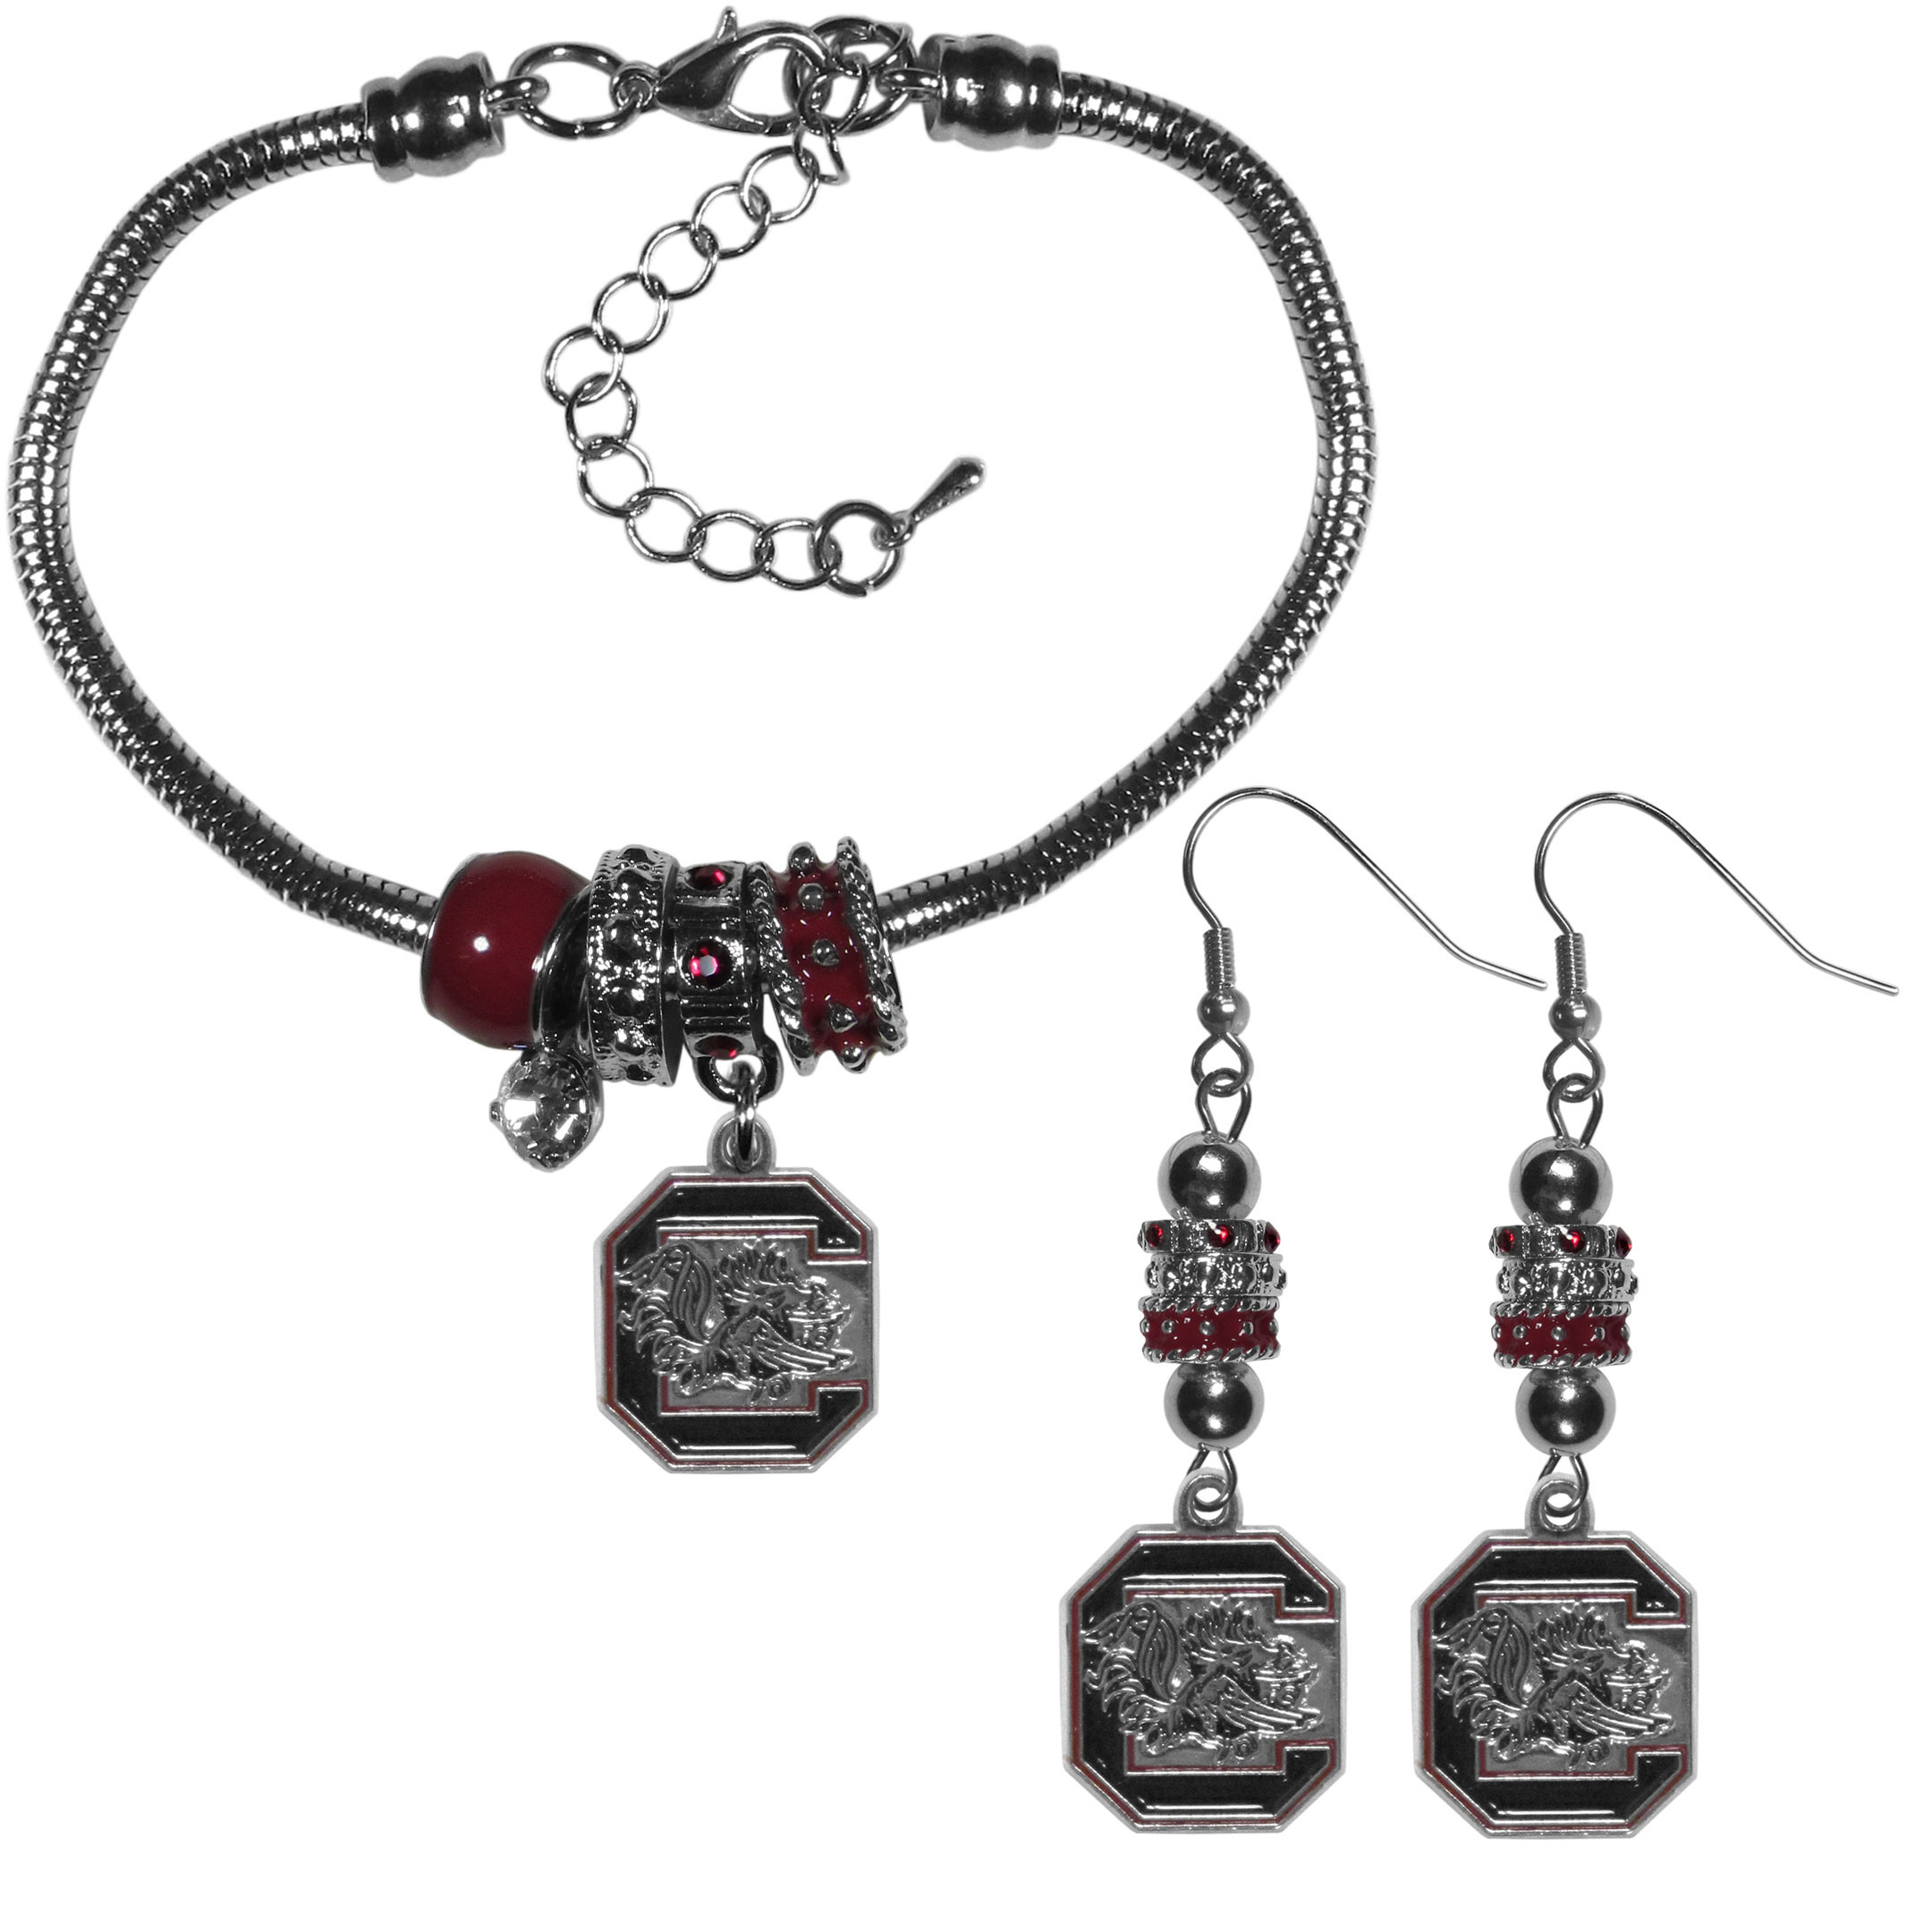 S. Carolina Gamecocks Euro Bead Earrings and Bracelet Set - We combine the popular Euro bead style with your love of the S. Carolina Gamecocks with this beautiful jewelry set that includes earrings and a matching bracelet. The stylish earrings feature hypoallergenic, nickel free fishhook posts and 3 team colored Euro beads and a metal team charm. The matching snake chain bracelet is 7.5 inches long with a 2 inch extender and 4 Euro beads with a rhinestone charm and team charm.